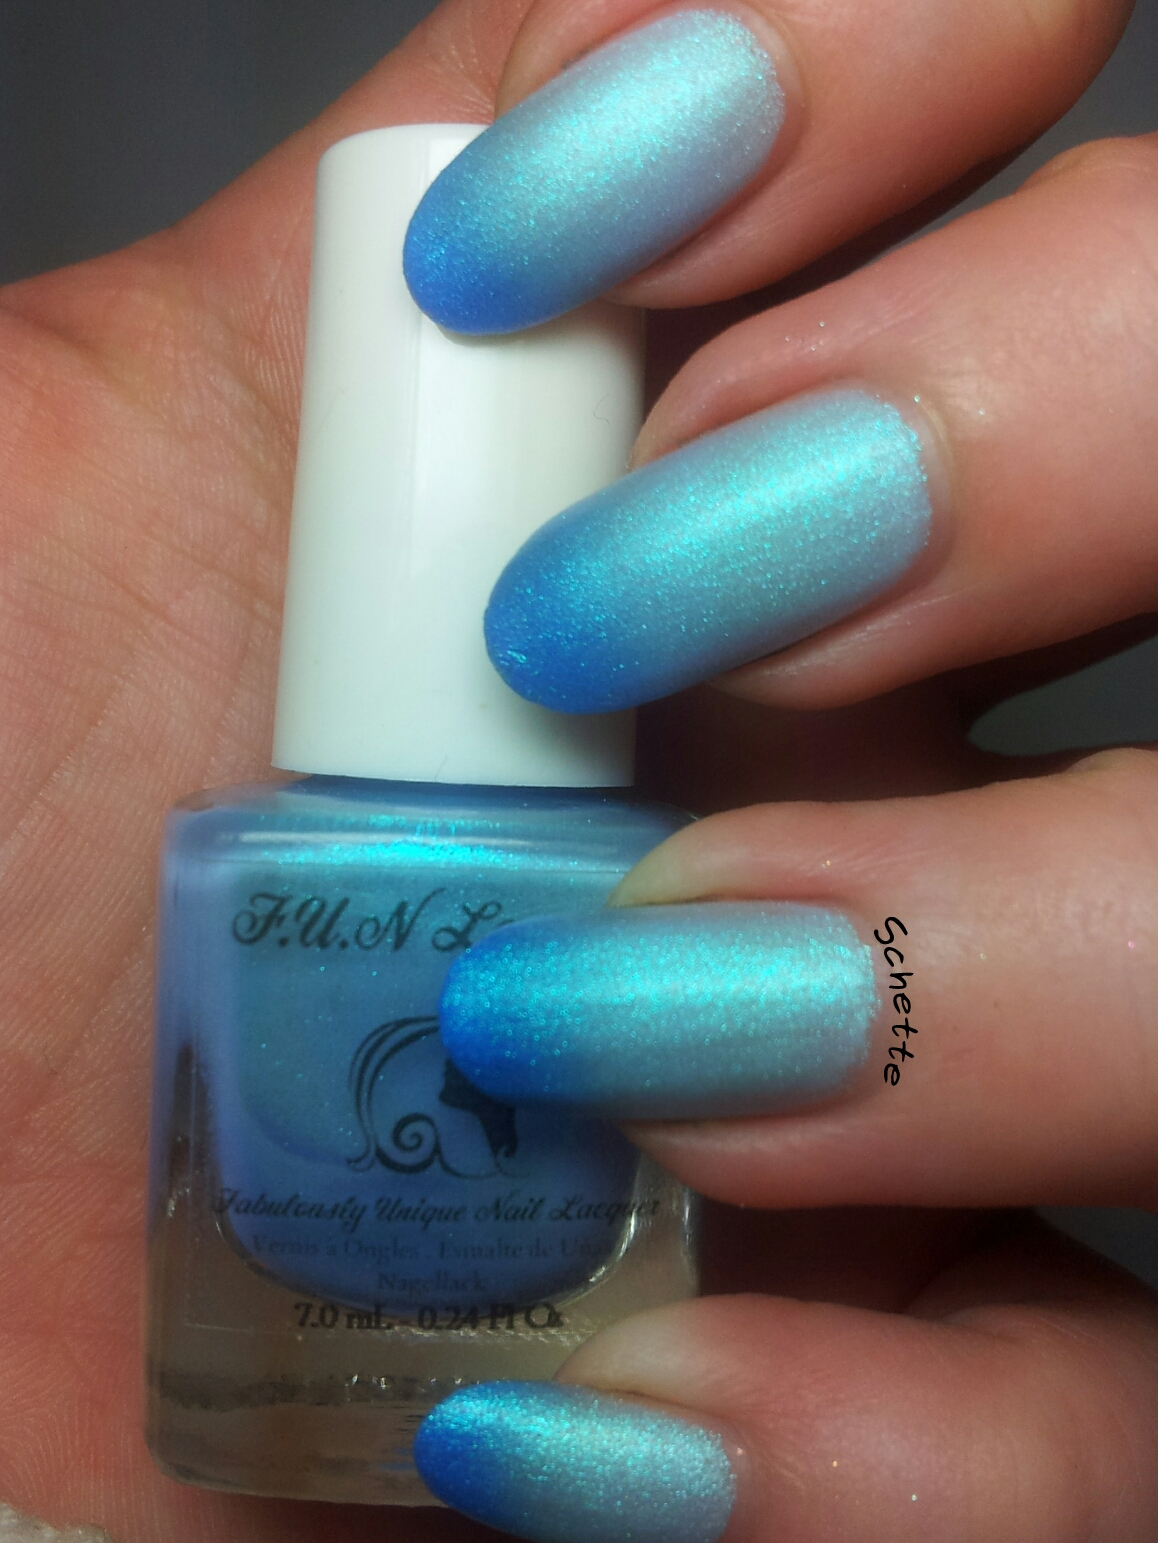 FUN Lacquer - Icy Snow